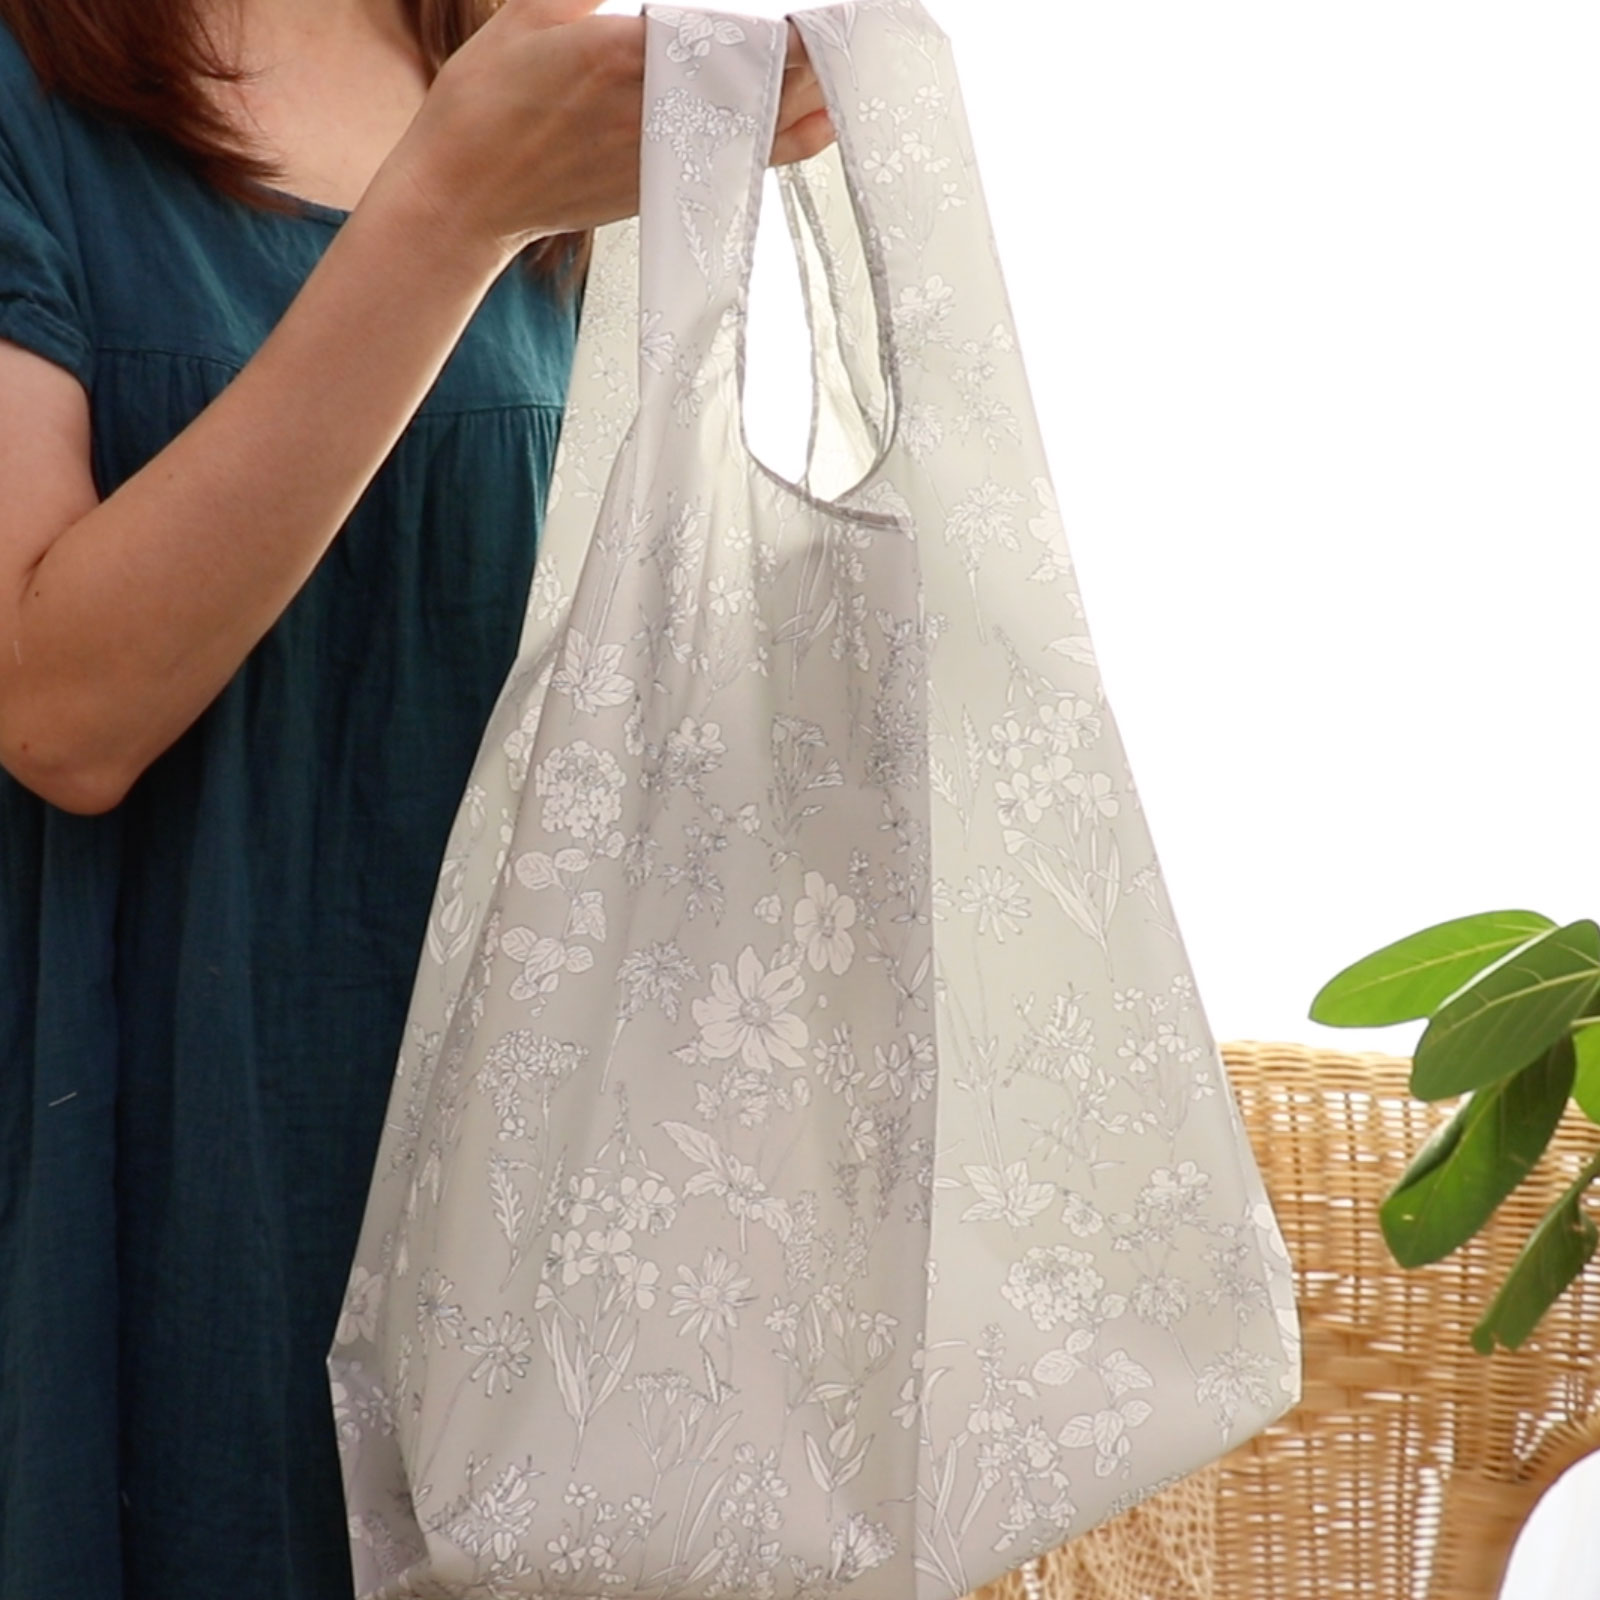 Plastic Bag-Inspired Large Shopping Bag